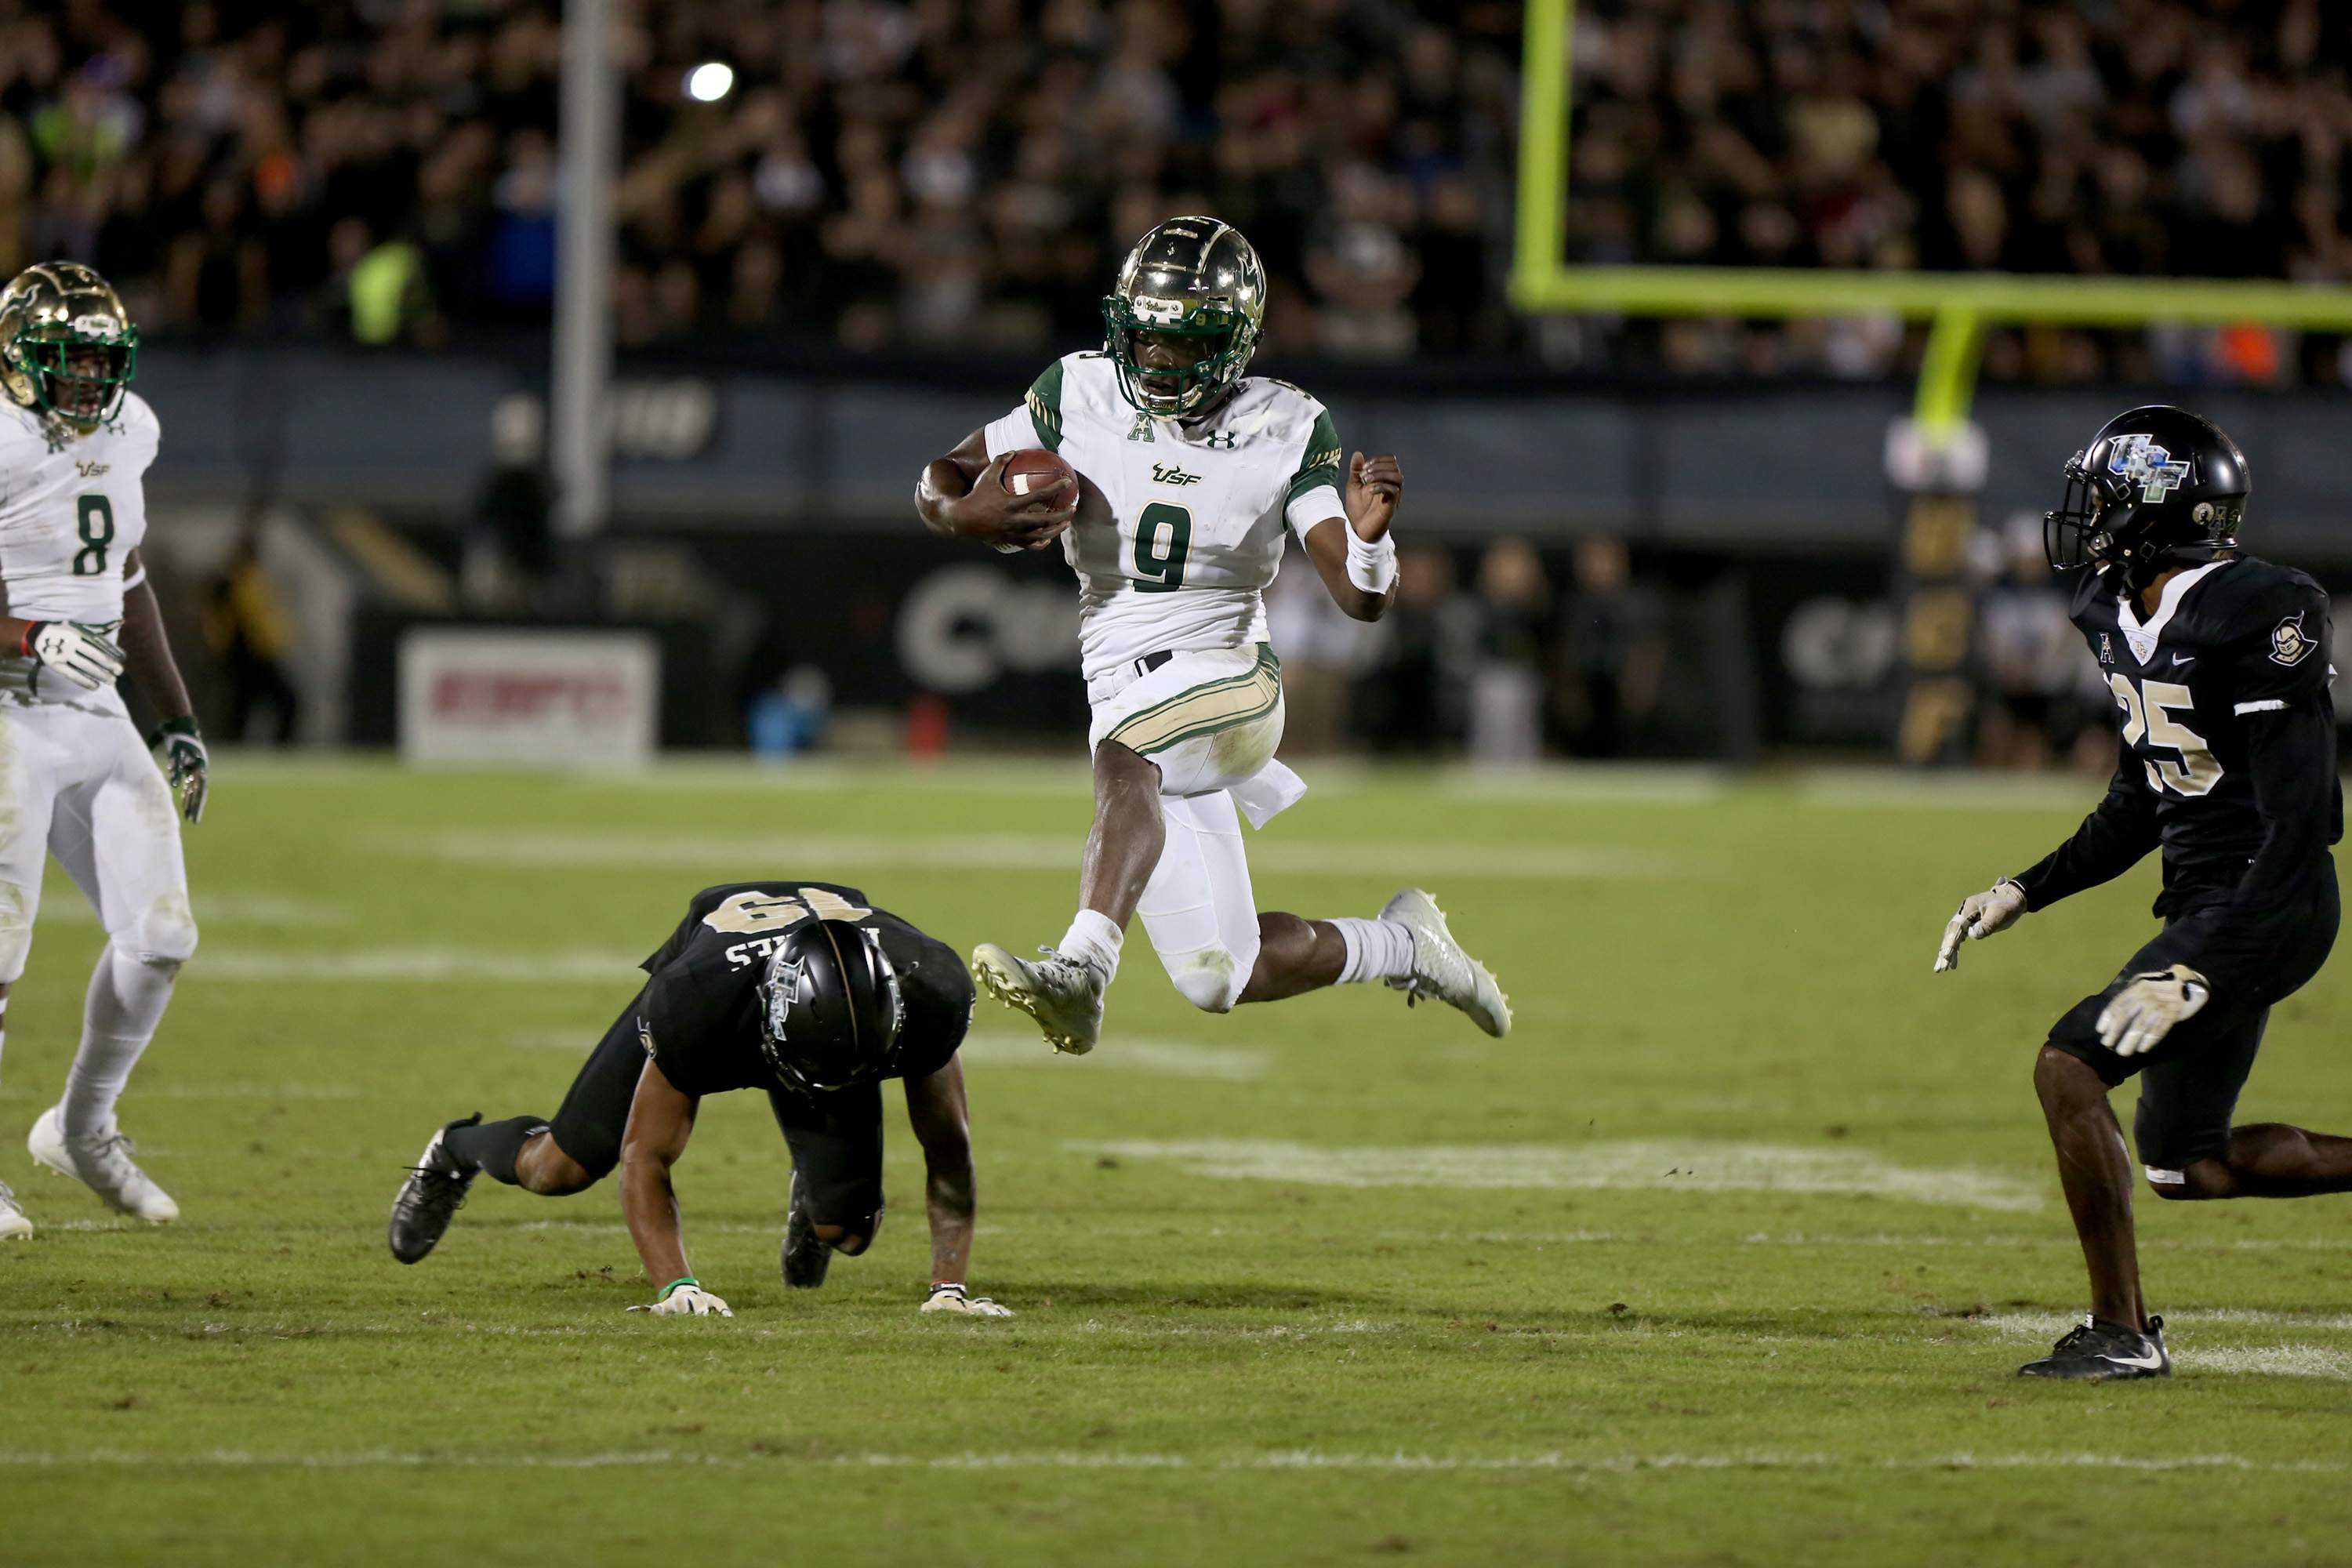 USF QB Quinton Flowers shines in 49,42 loss to rival UCF